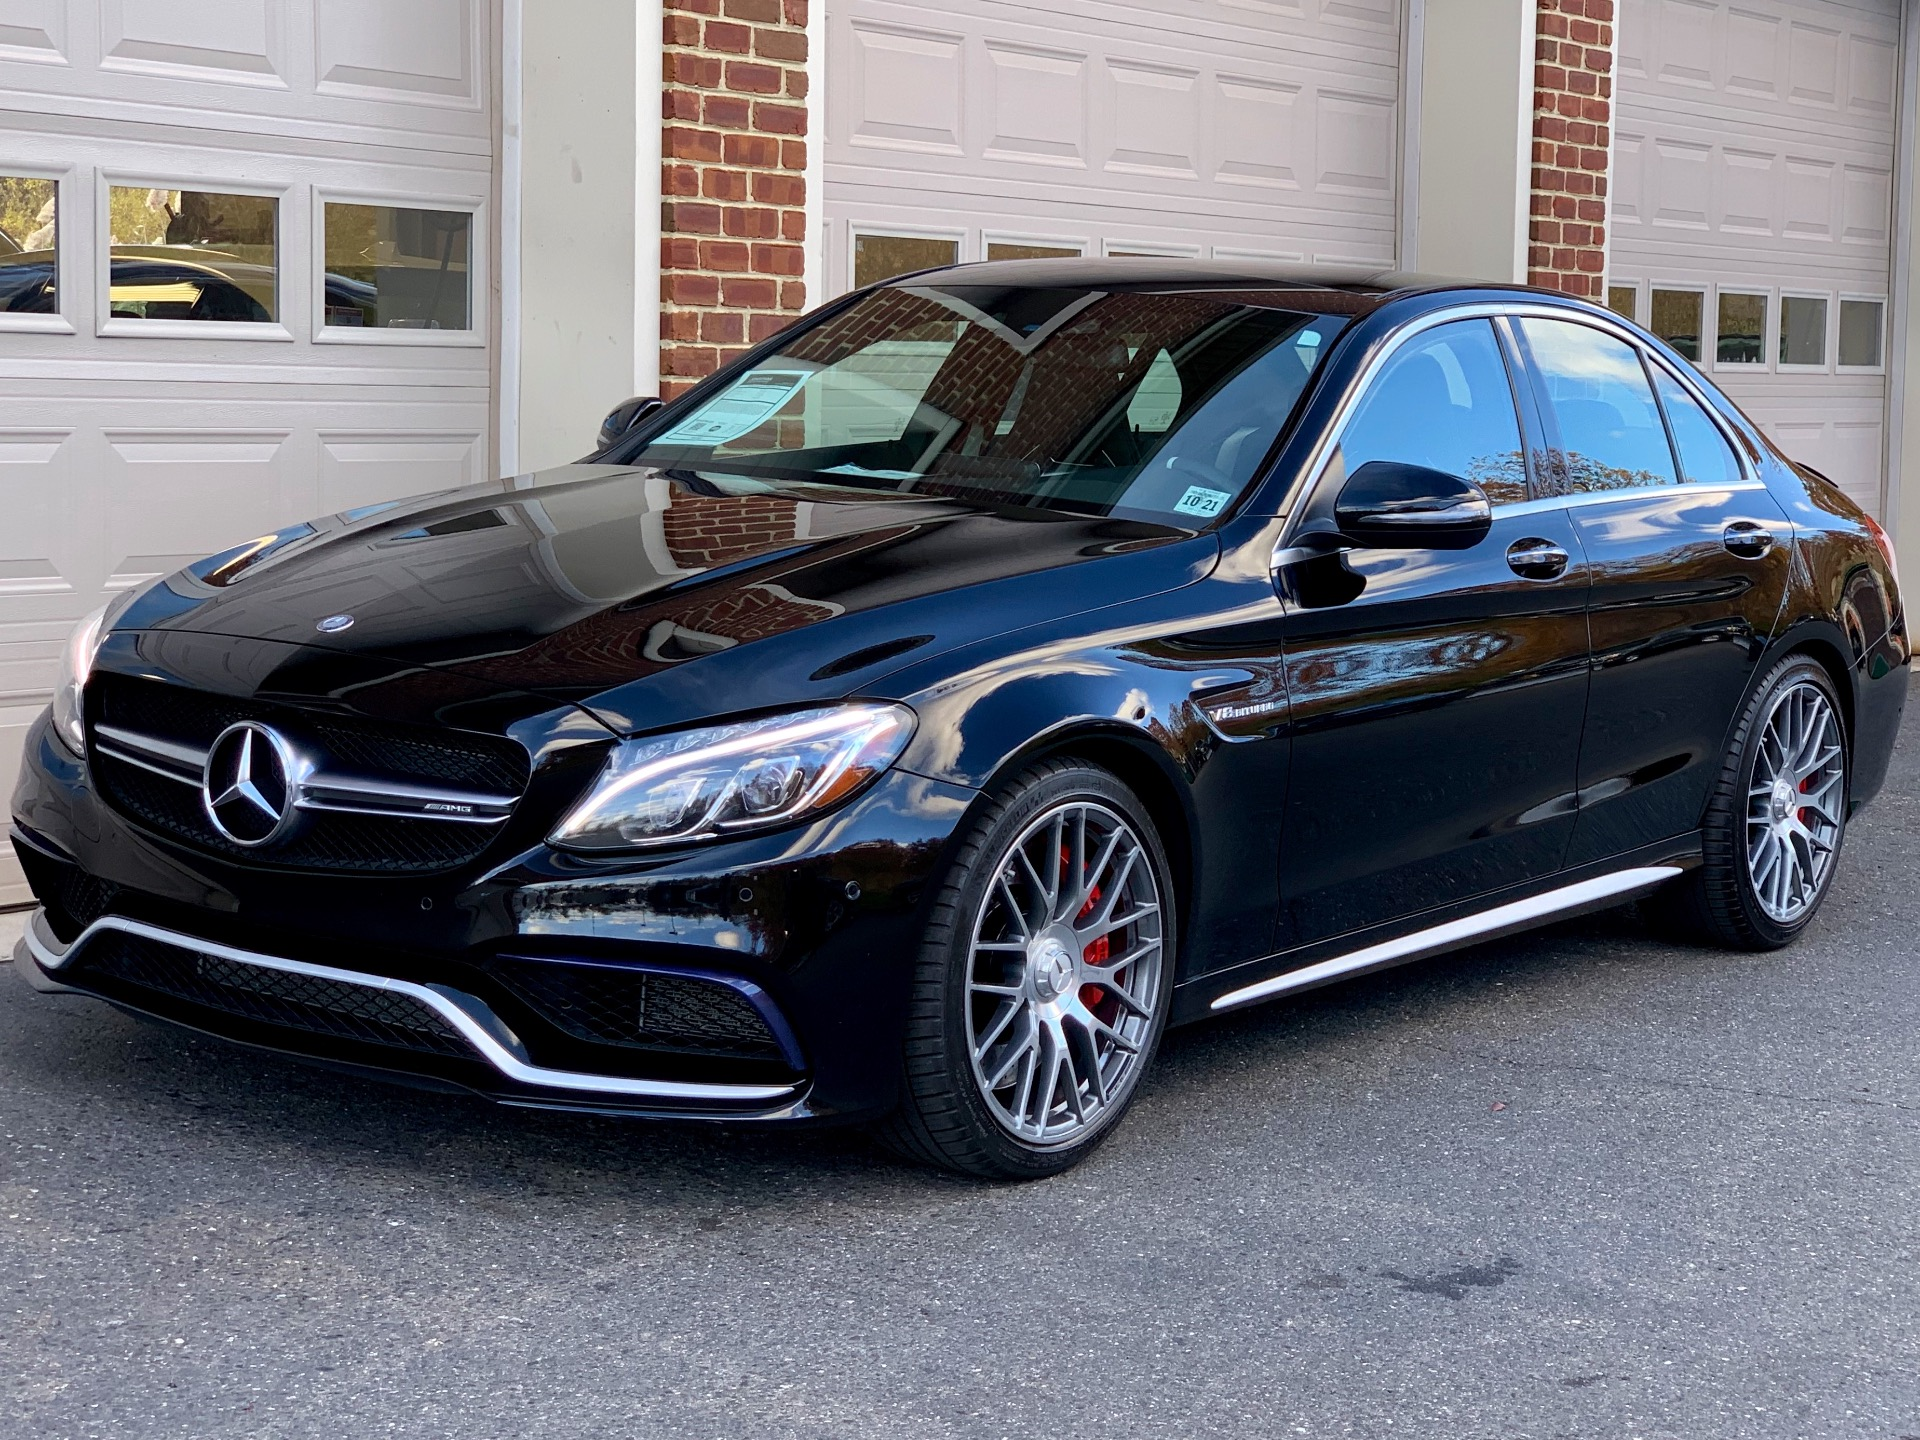 2016 mercedes benz c class amg c 63 s stock 119415 for sale near edgewater park nj nj. Black Bedroom Furniture Sets. Home Design Ideas